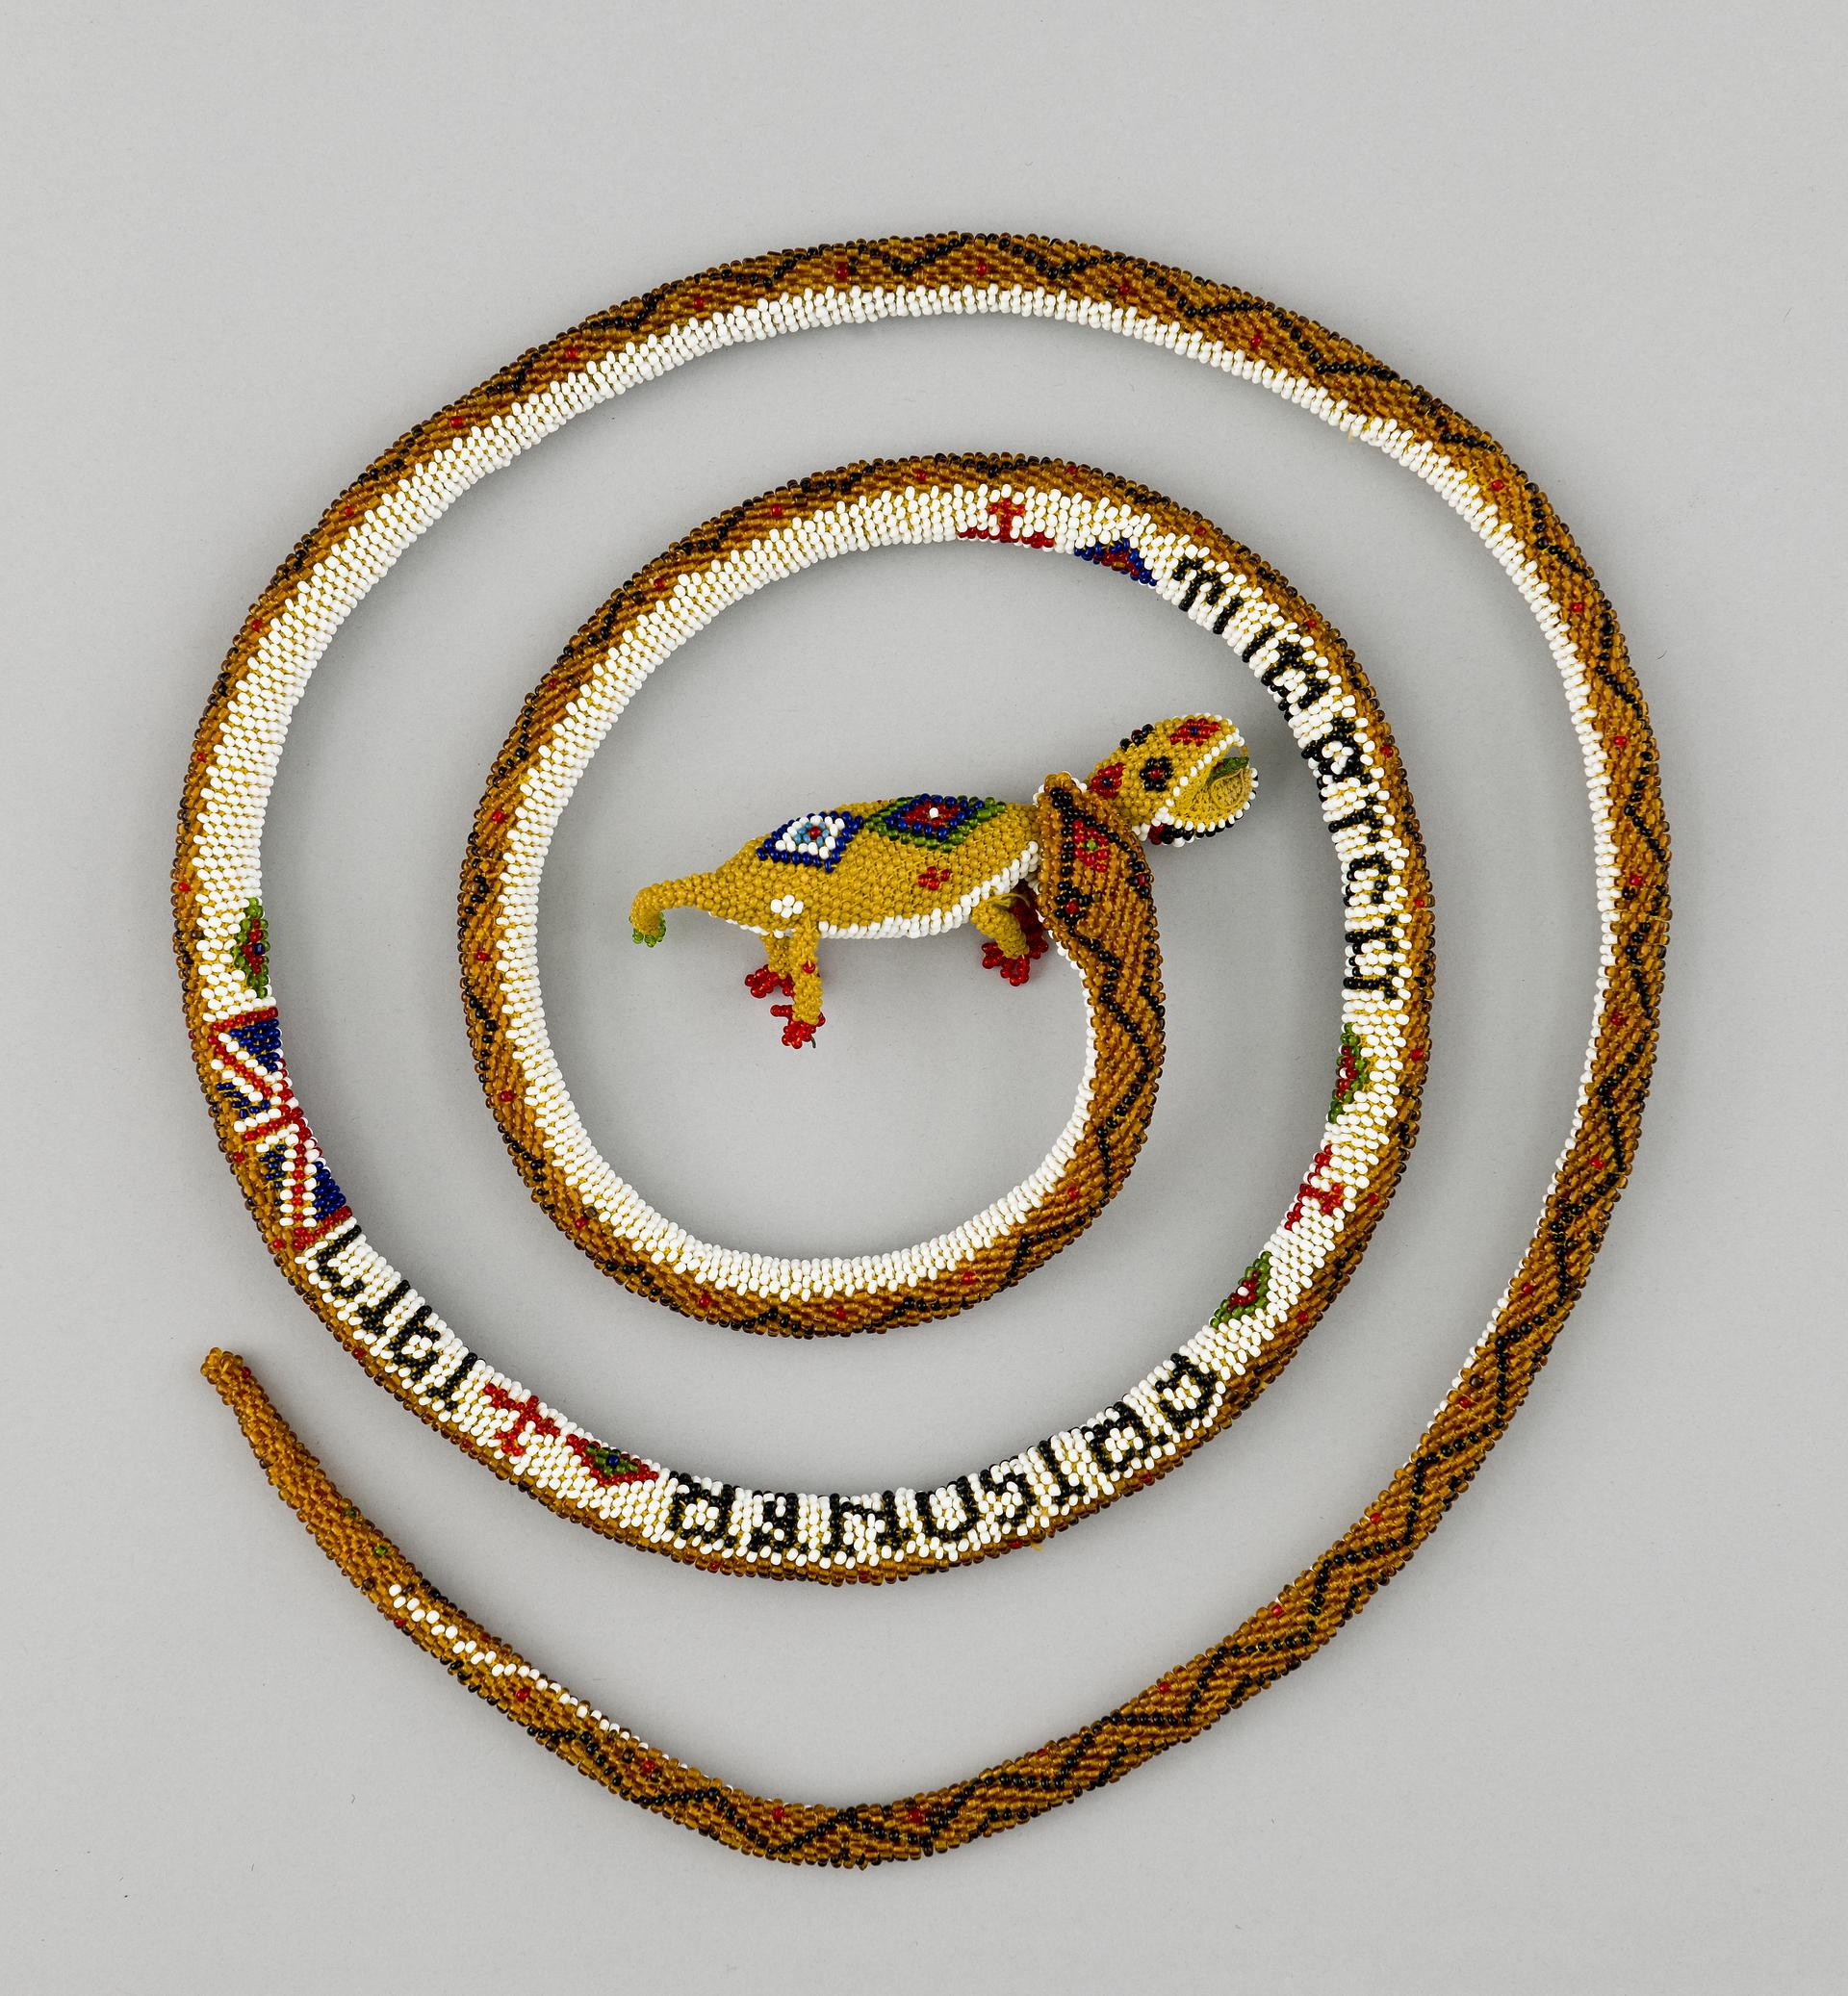 Open the image &lsquoBeadwork model of a snake holding a chameleon'